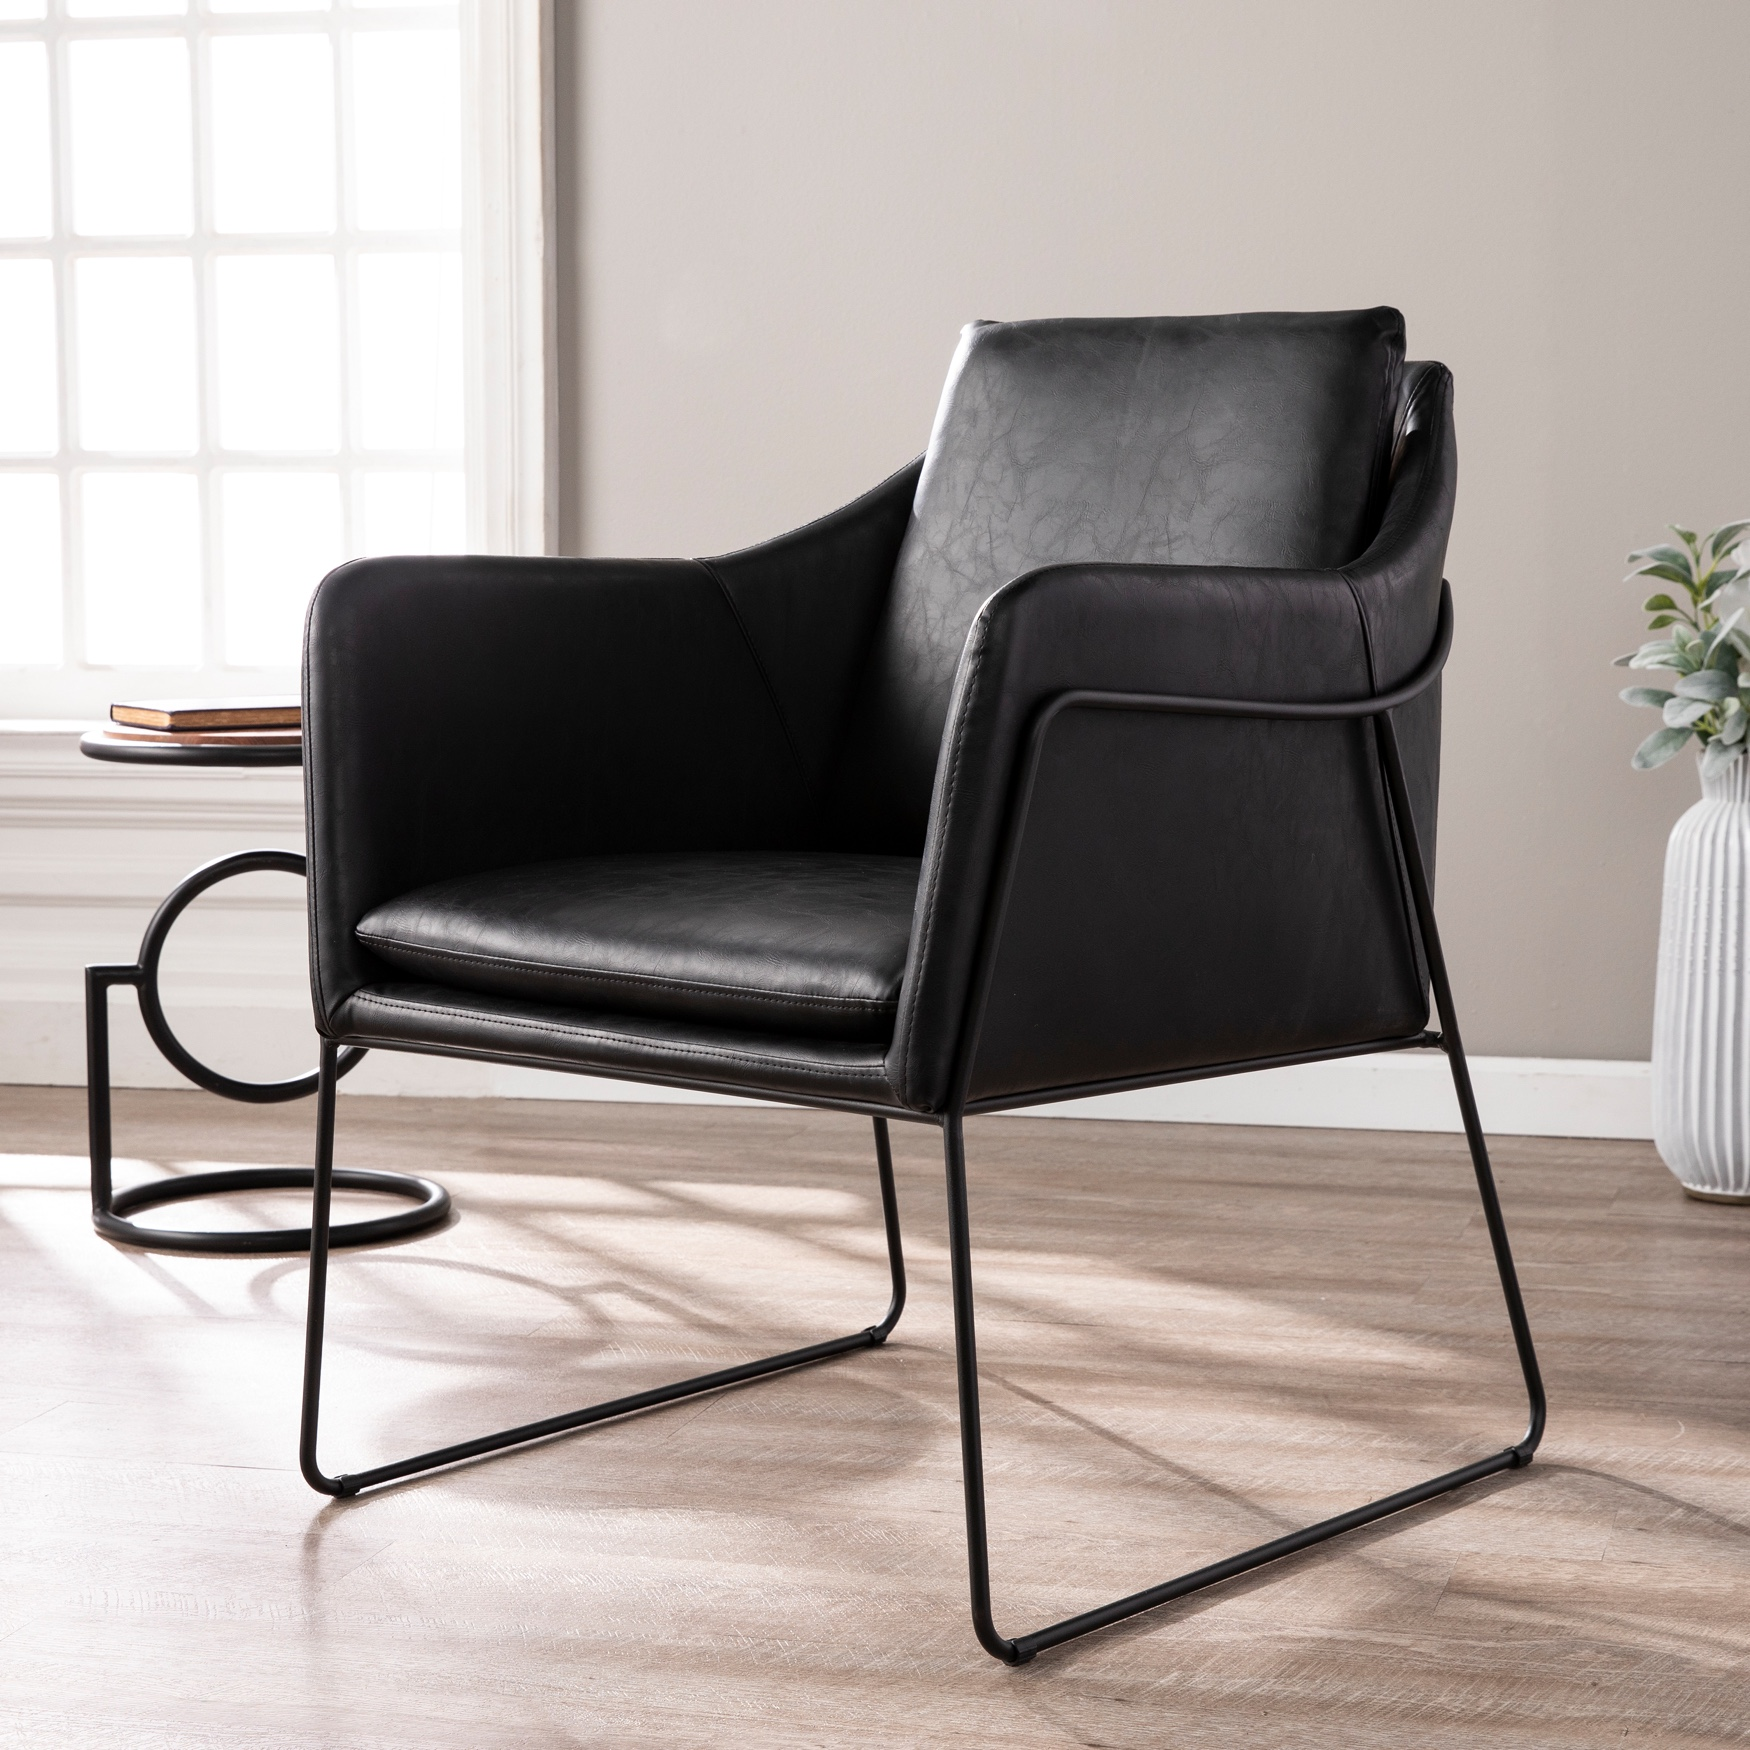 Kester Black Faux Leather Accent Chair, BLACK